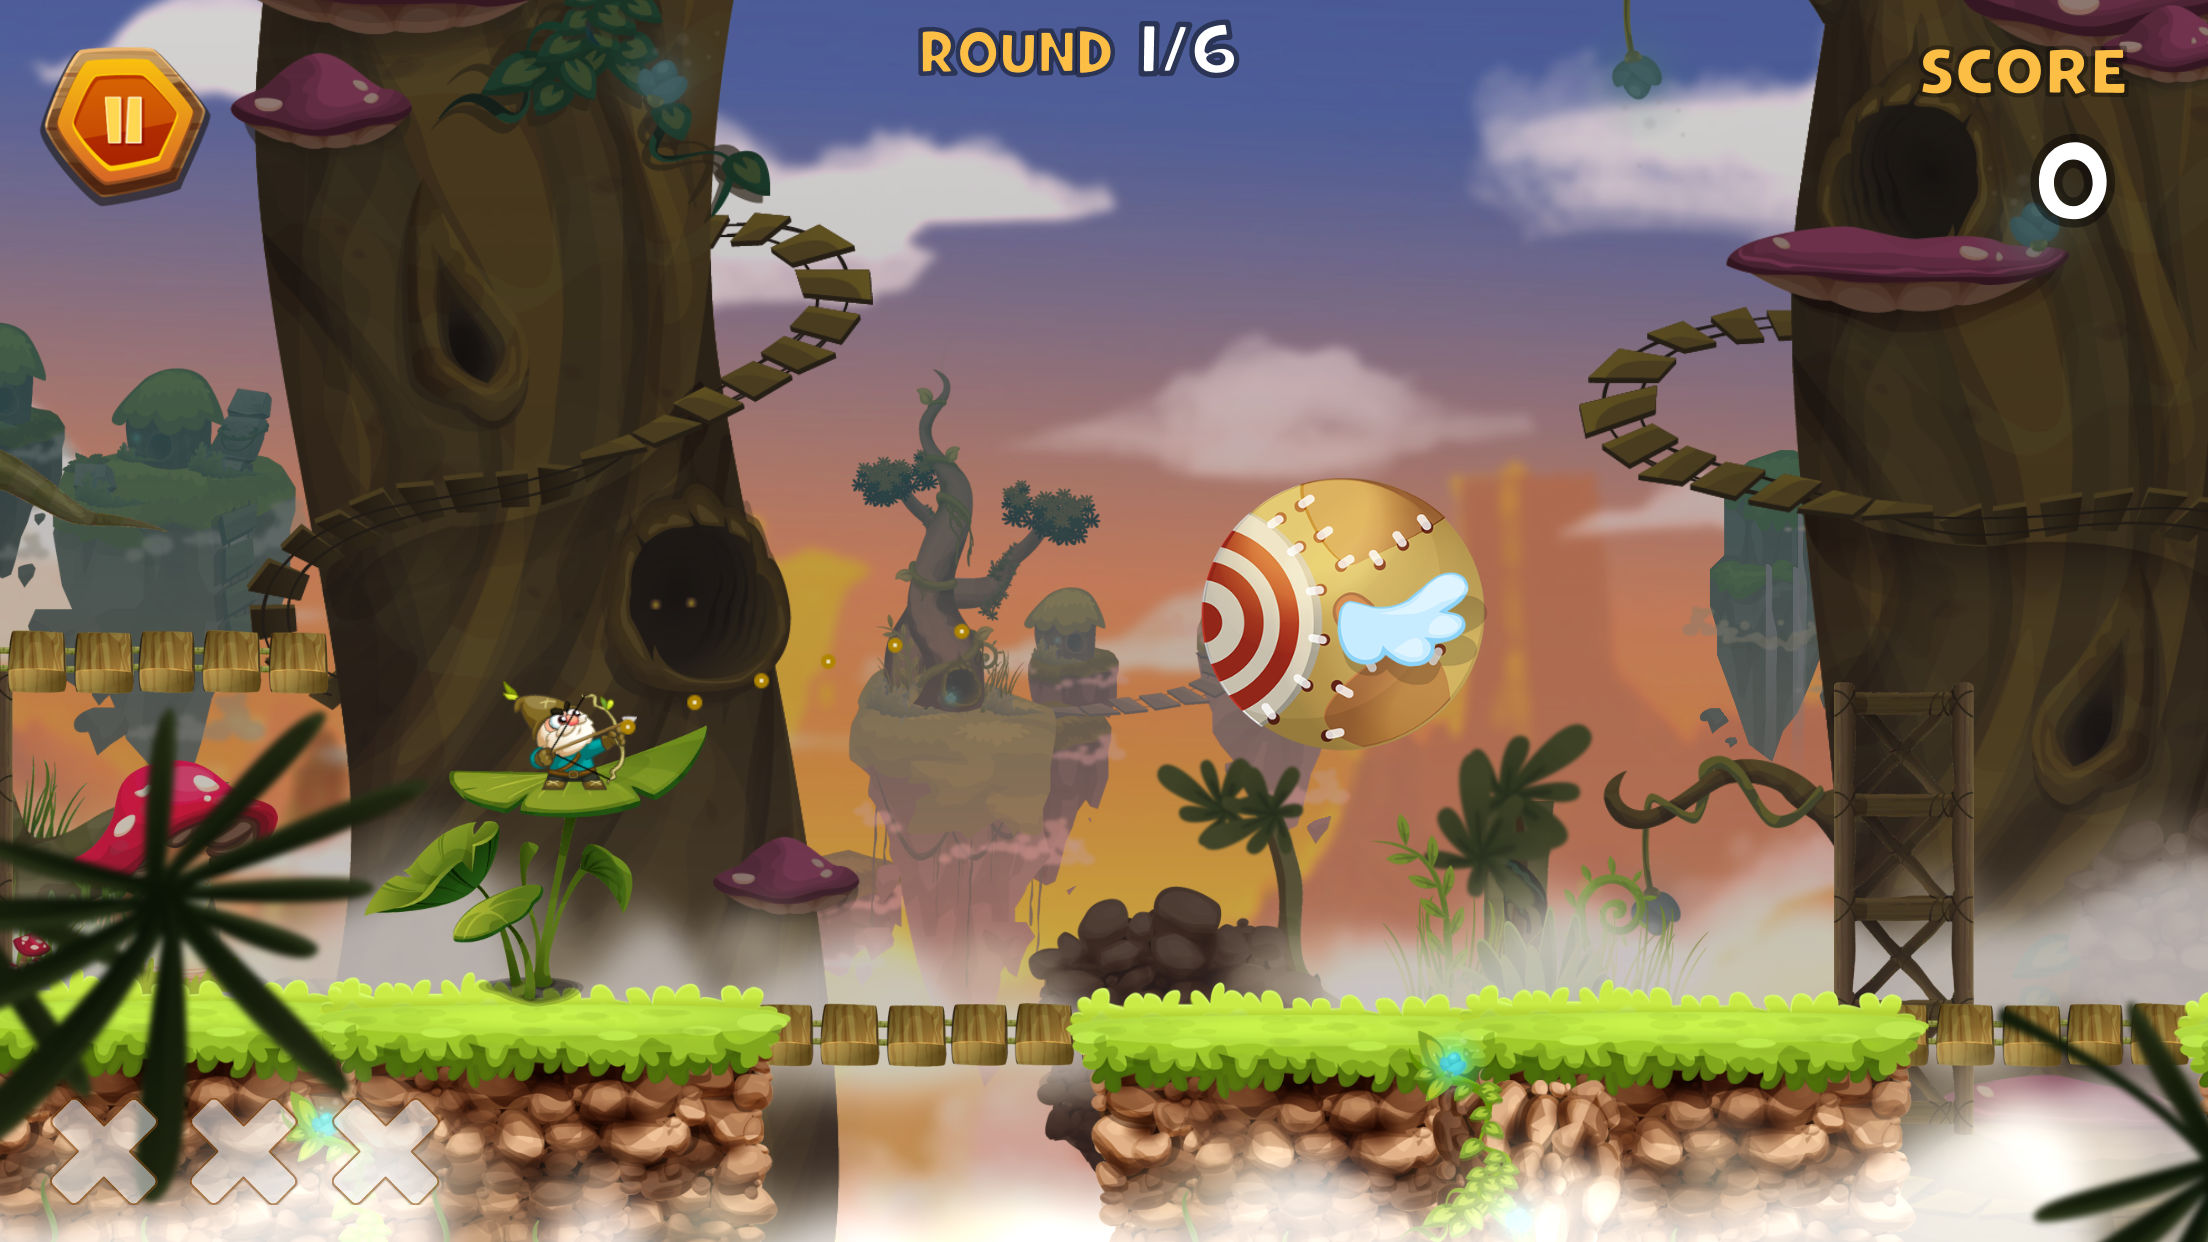 Mushroom Guardian is A Fun, Old-School Platformer Not for the Faint of Heart